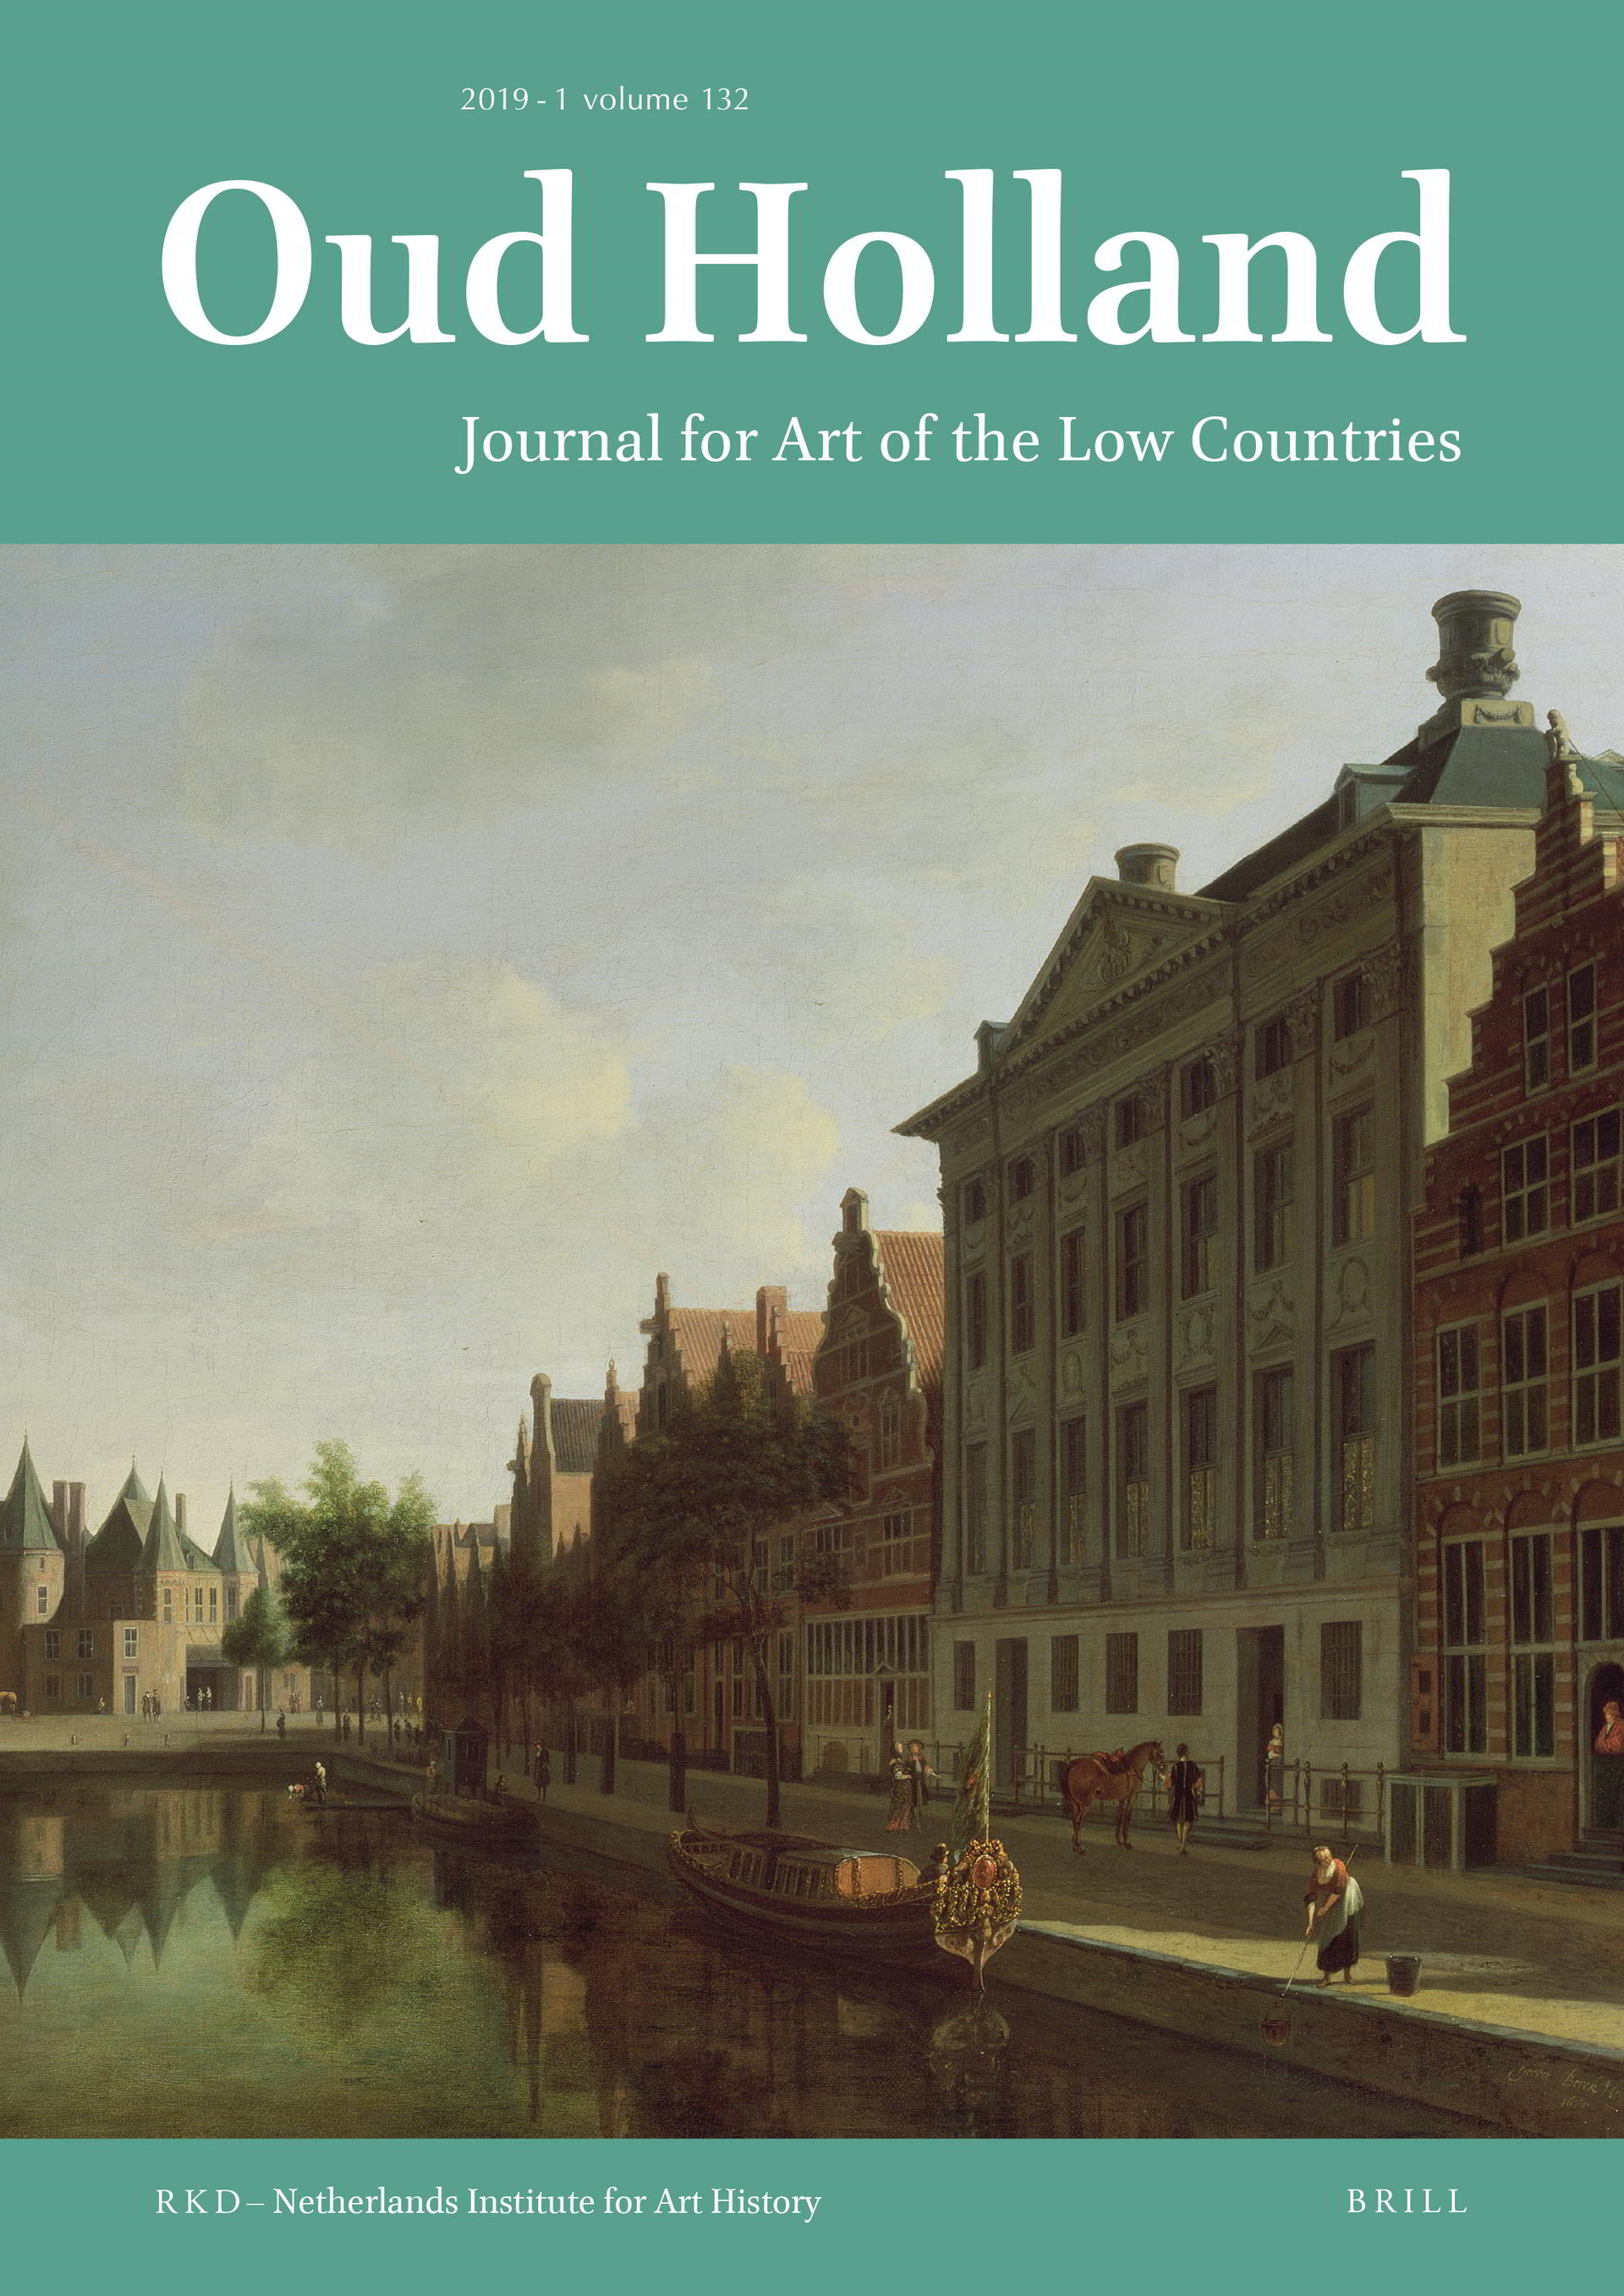 Oud Holland – Journal for Art of the Low Countries, 2019-1, volume 132